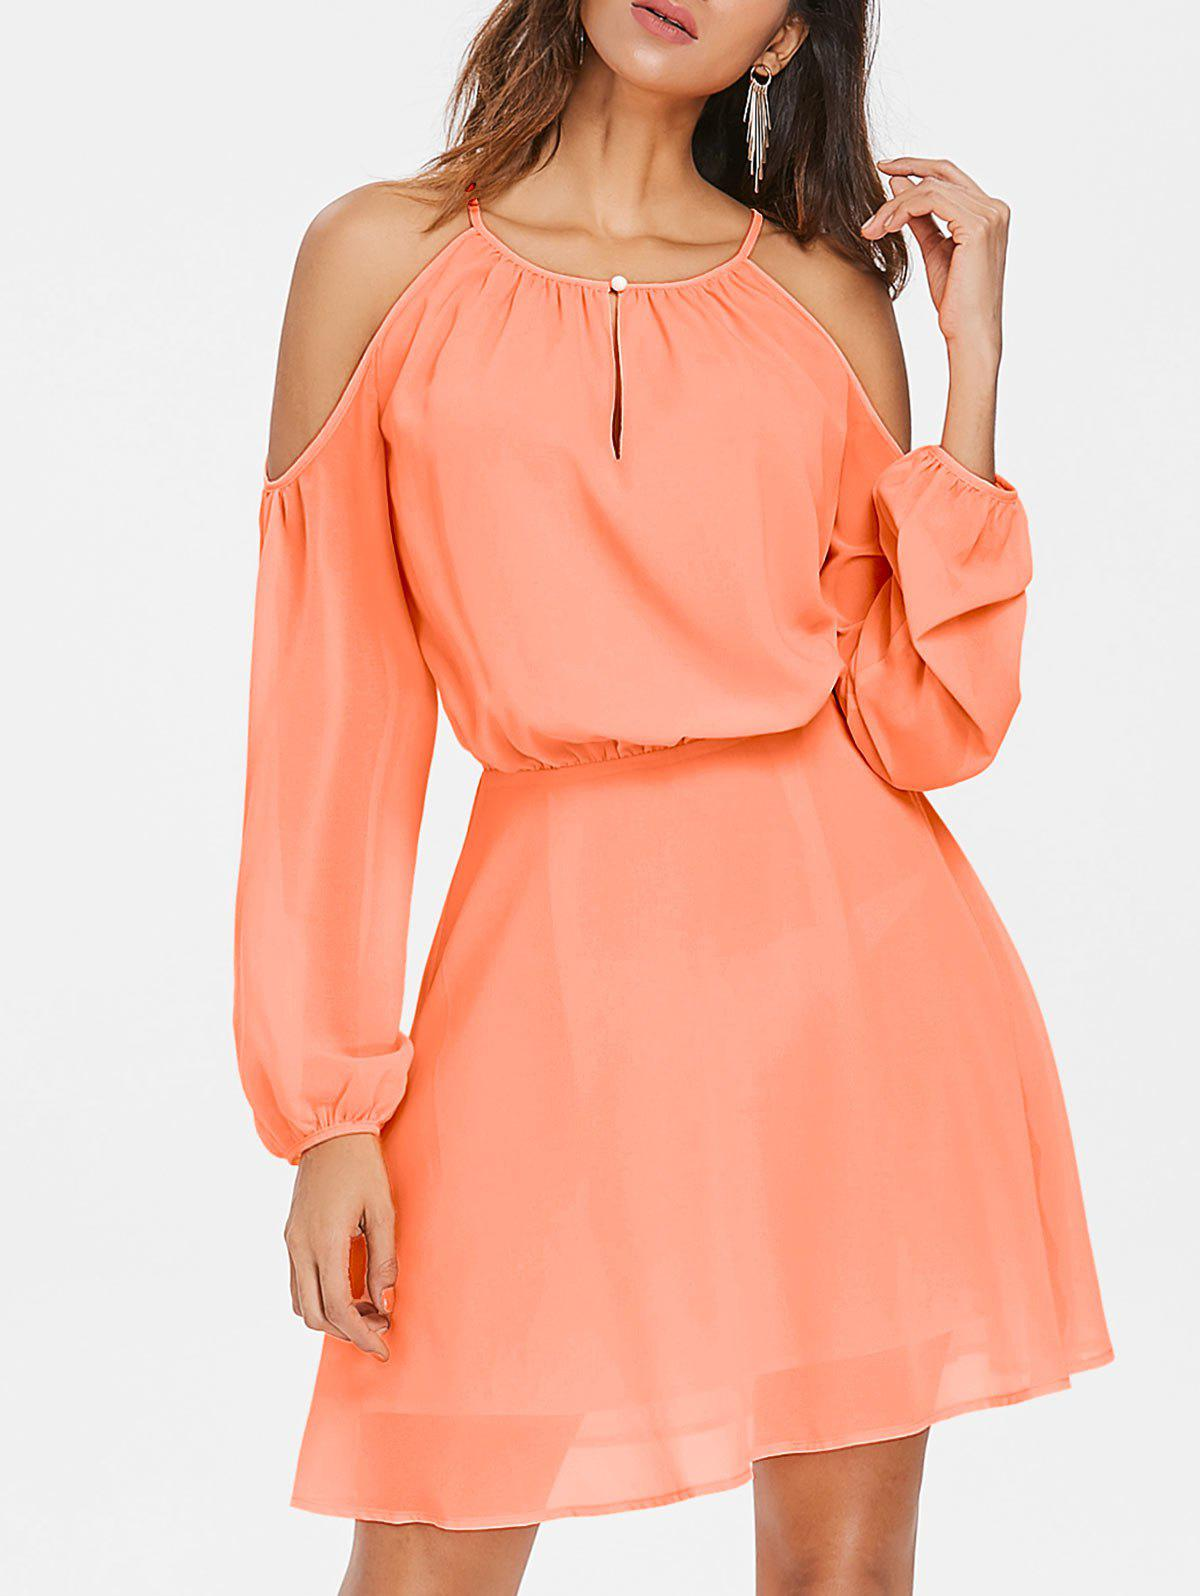 Cold Shoulder Short Blouson Dress - ORANGE PINK M